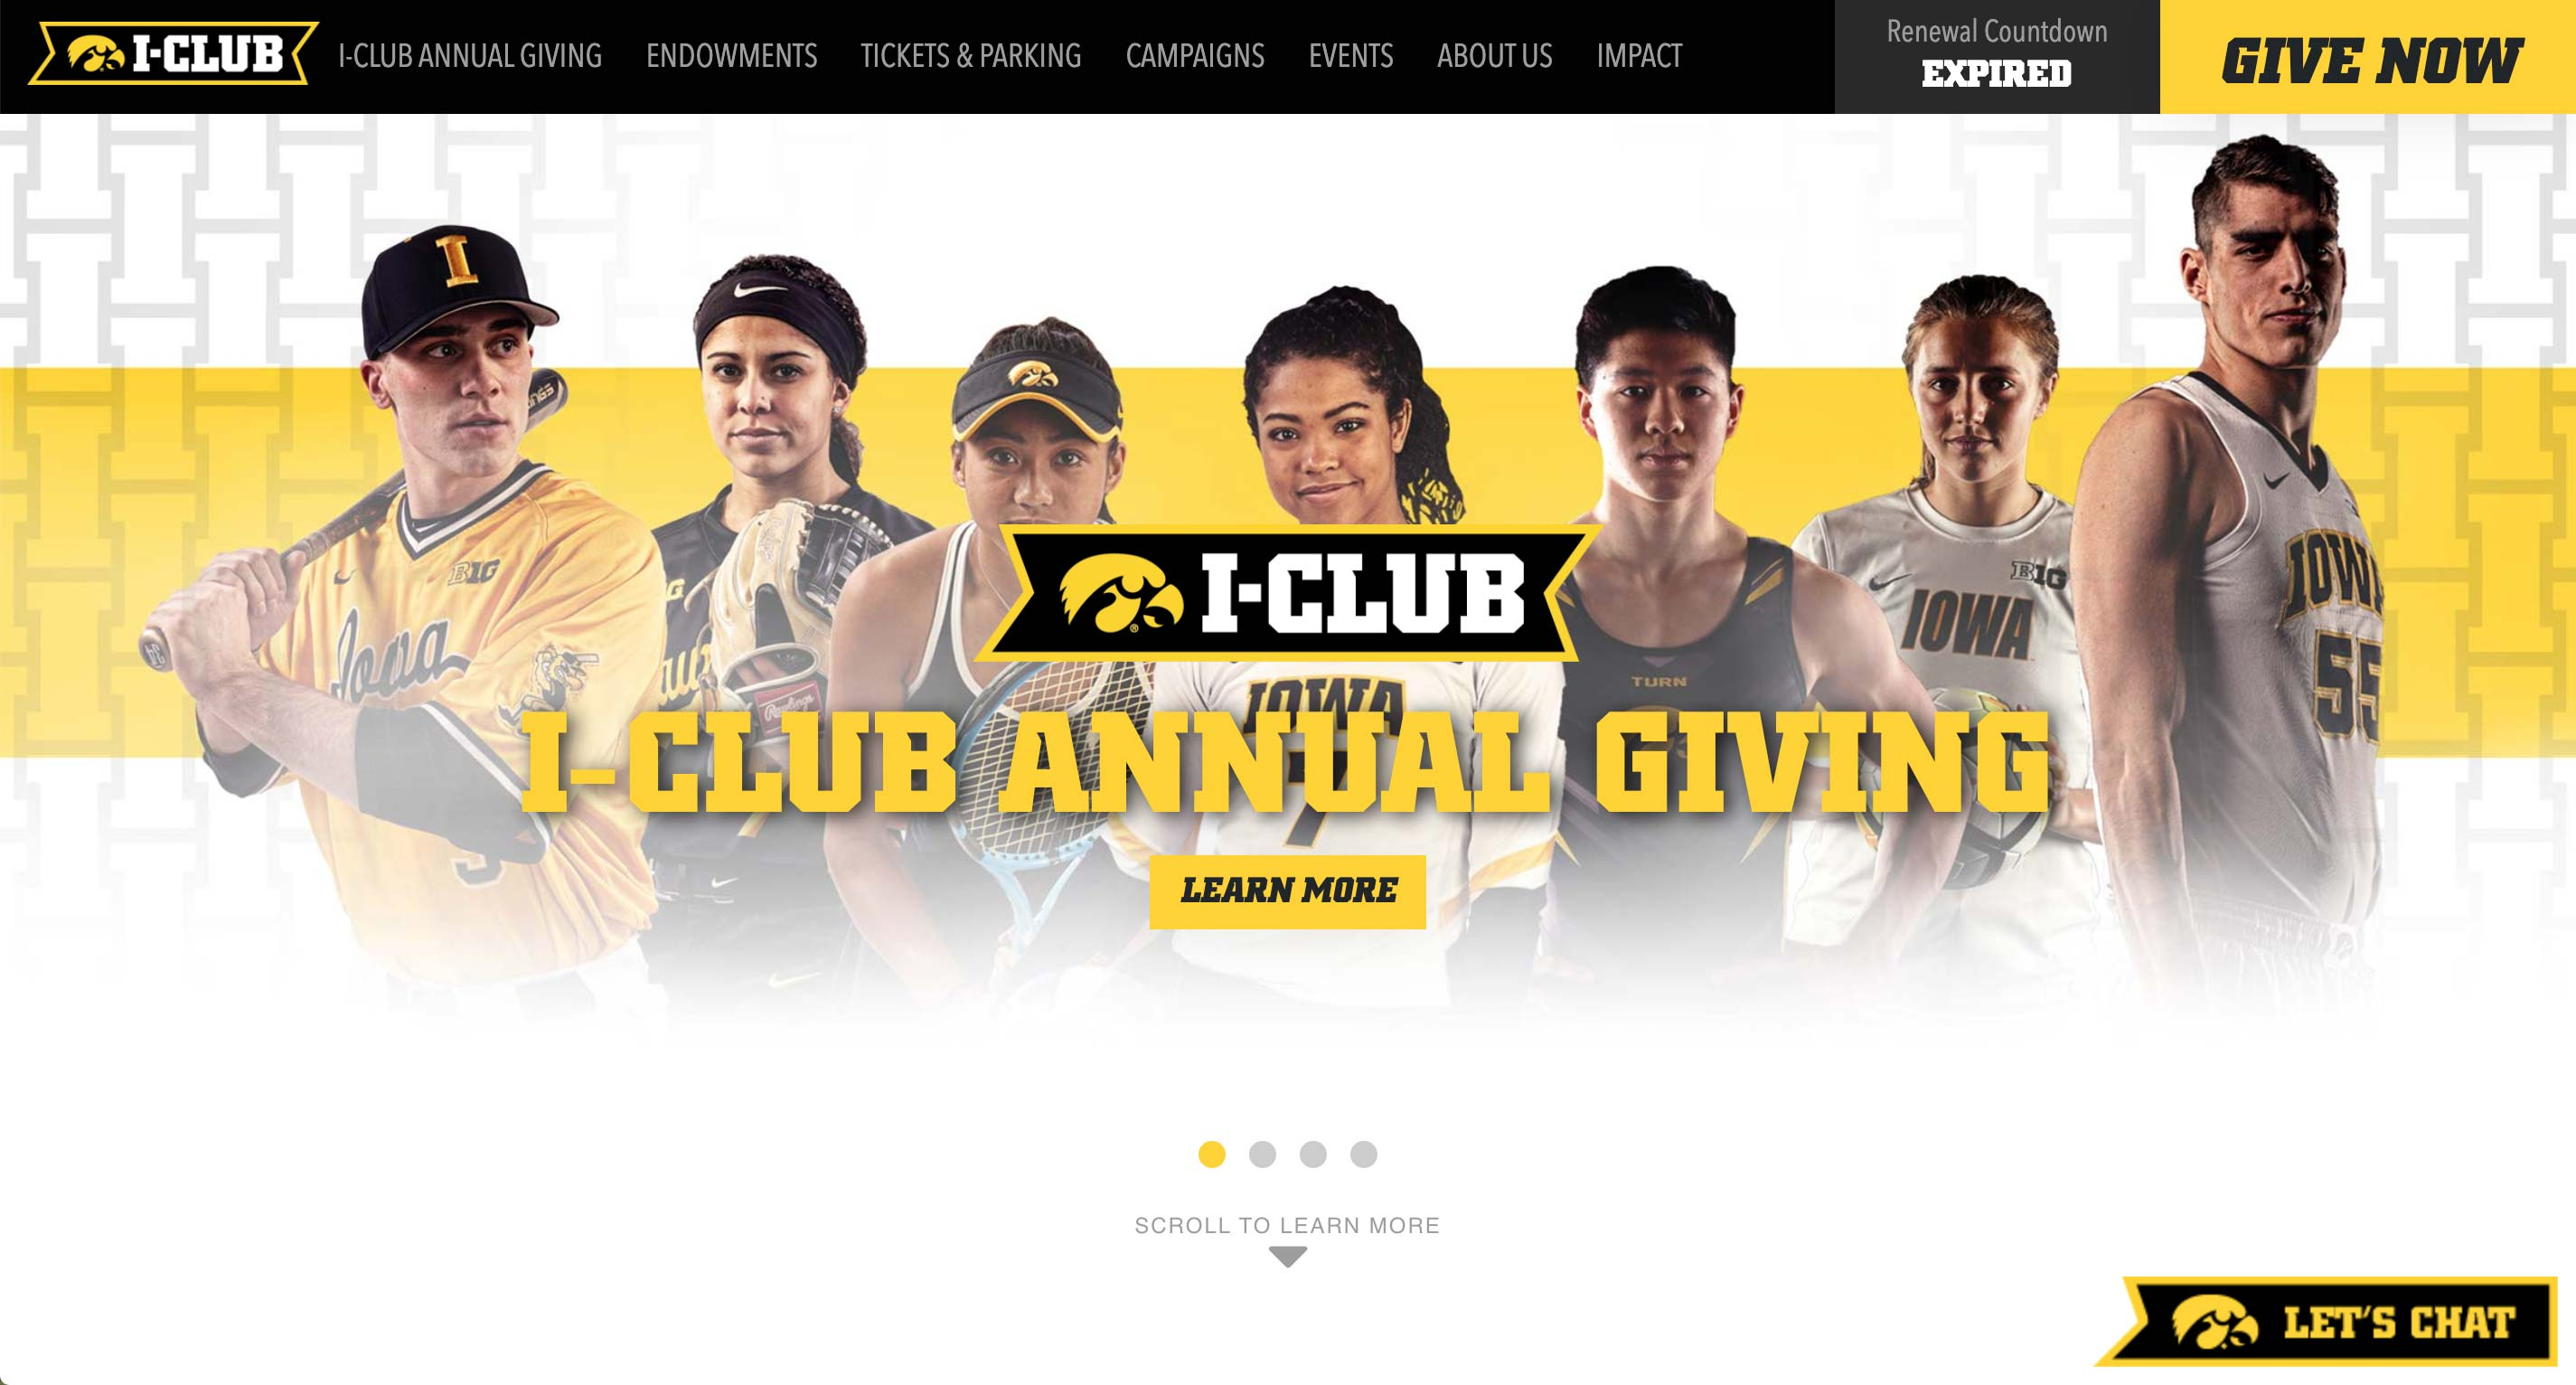 Join The I-Club Website  | <a href='http://jointheiclub.com/' target='_blank'>Visit Site <i class='nc-icon-glyph arrows-1_share-91'></i></a><br><span>University of Iowa</span>